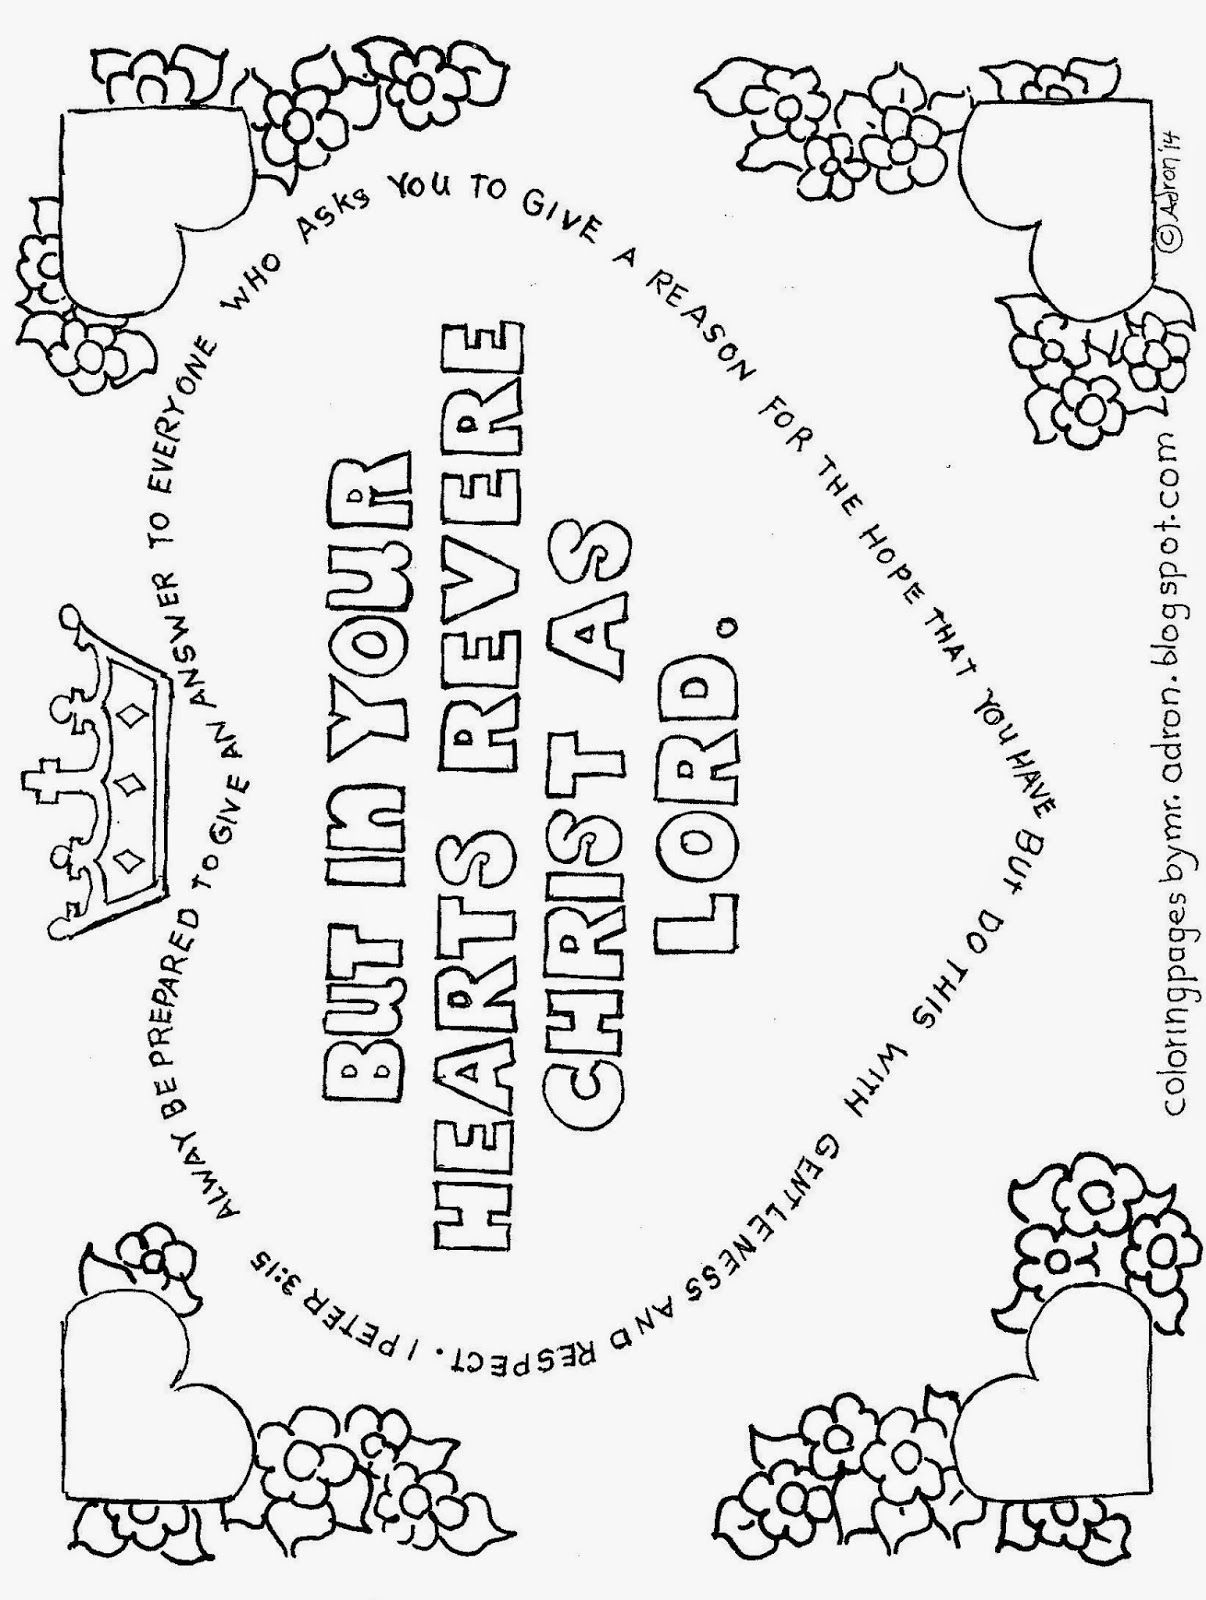 Coloring Pages For Kids By Mr Adron In Your Hearts